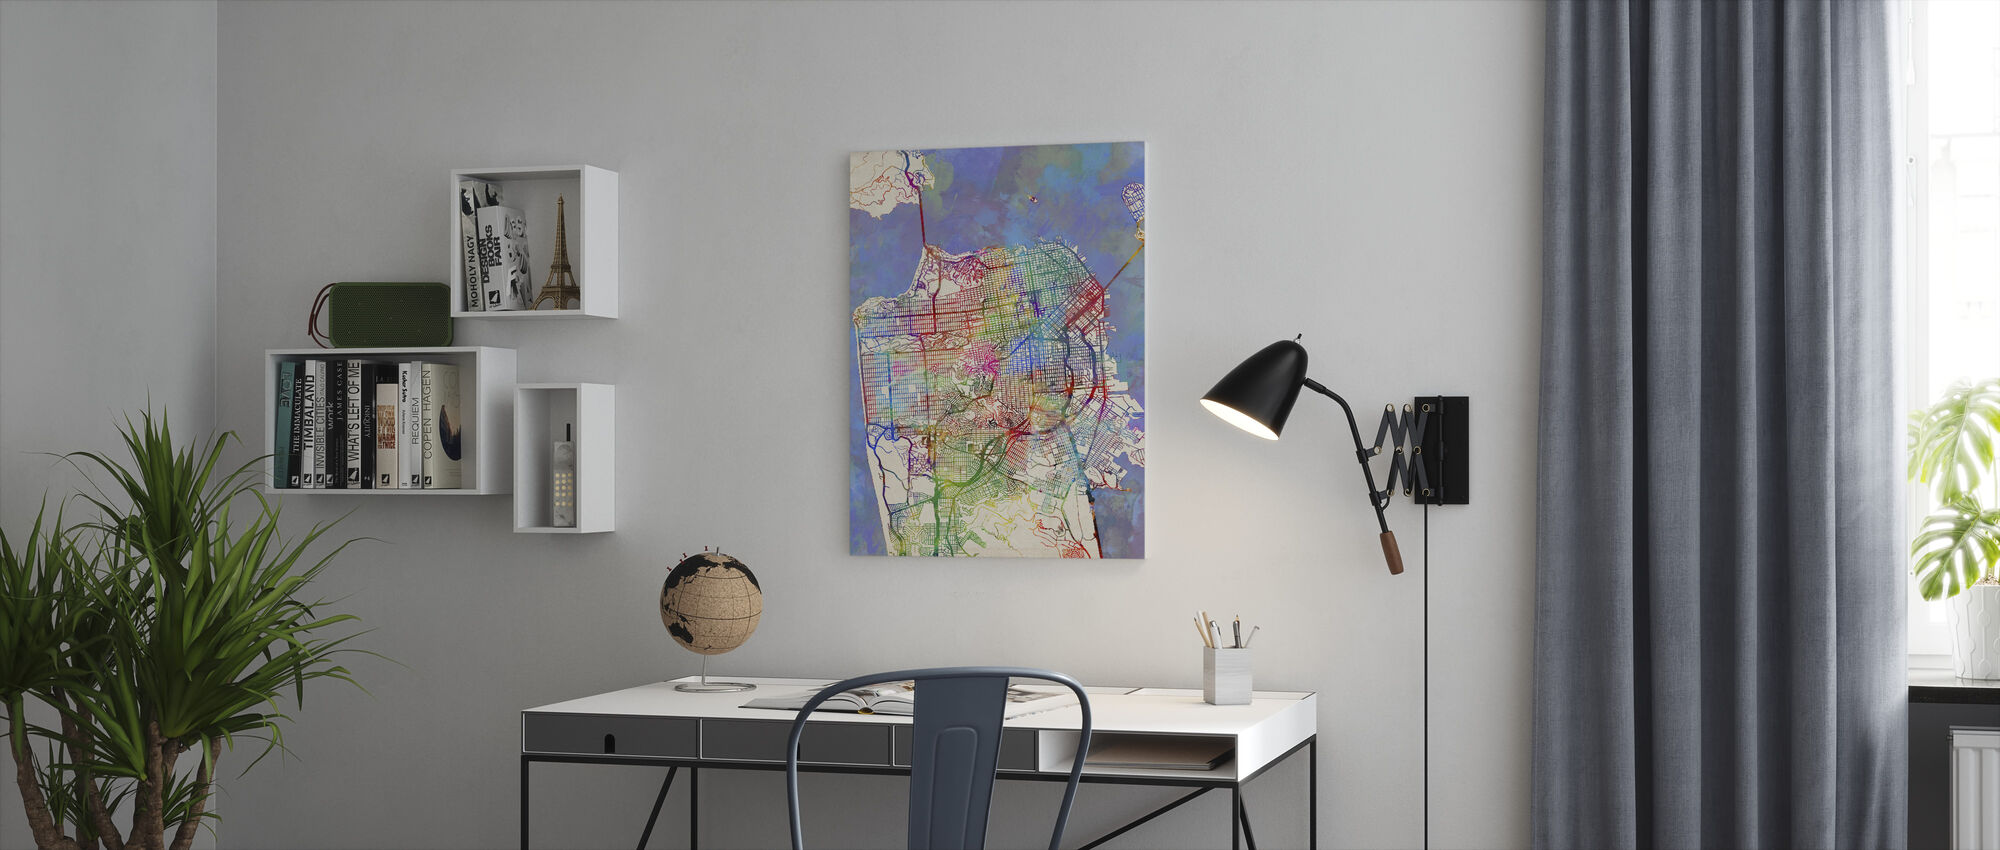 San Francisco City Street Map - Canvas print - Office